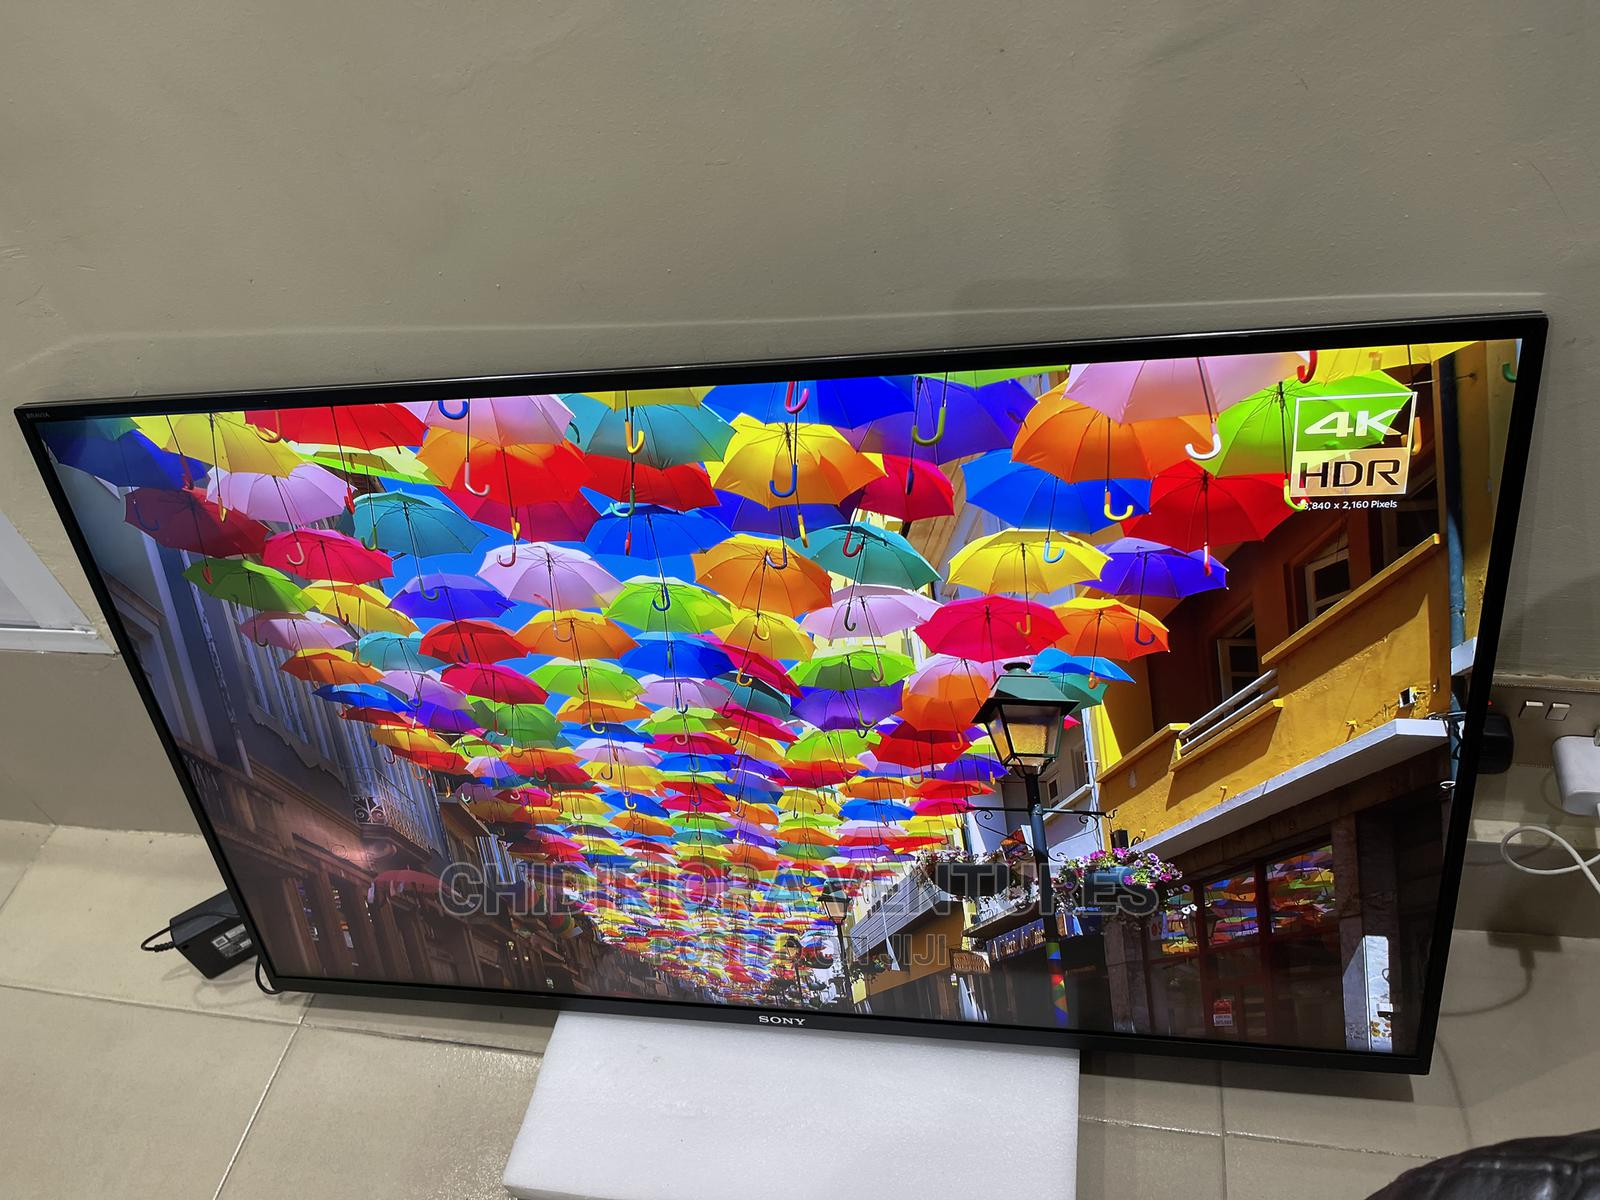 Sony Bravia Kd43xe8005 LED Hdr 4K Ultra HD Smart Android TV | TV & DVD Equipment for sale in Ojo, Lagos State, Nigeria